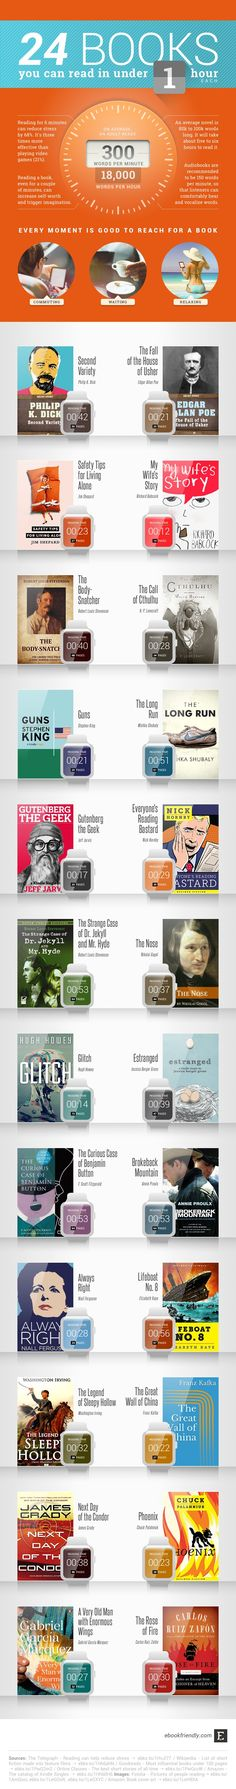 In this post you'll find 24 books that you can read in under one hour, accompanied by an infographic.